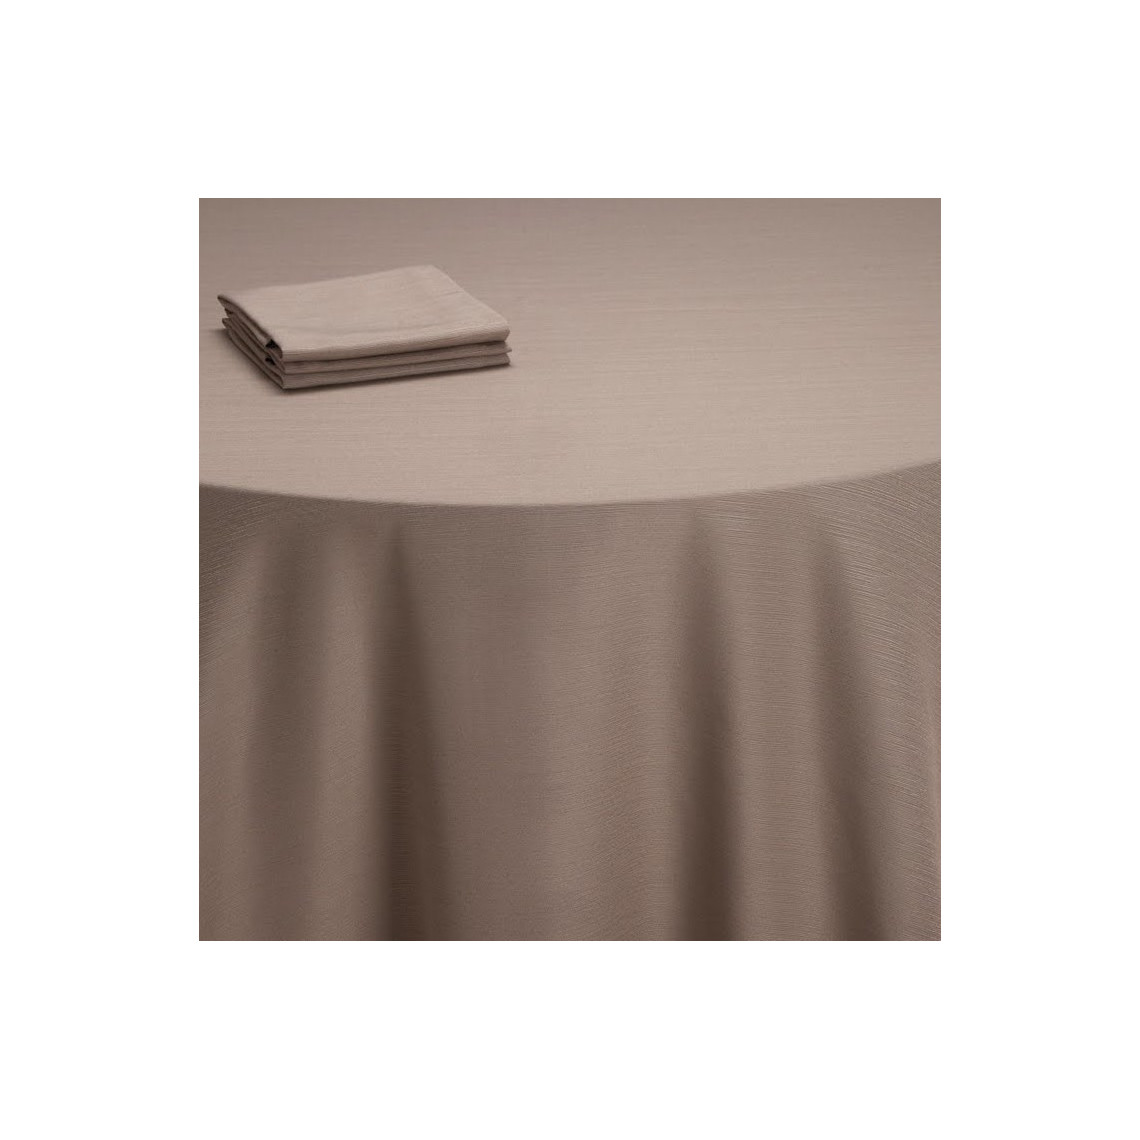 Nappe table Sissi taupe (M1)